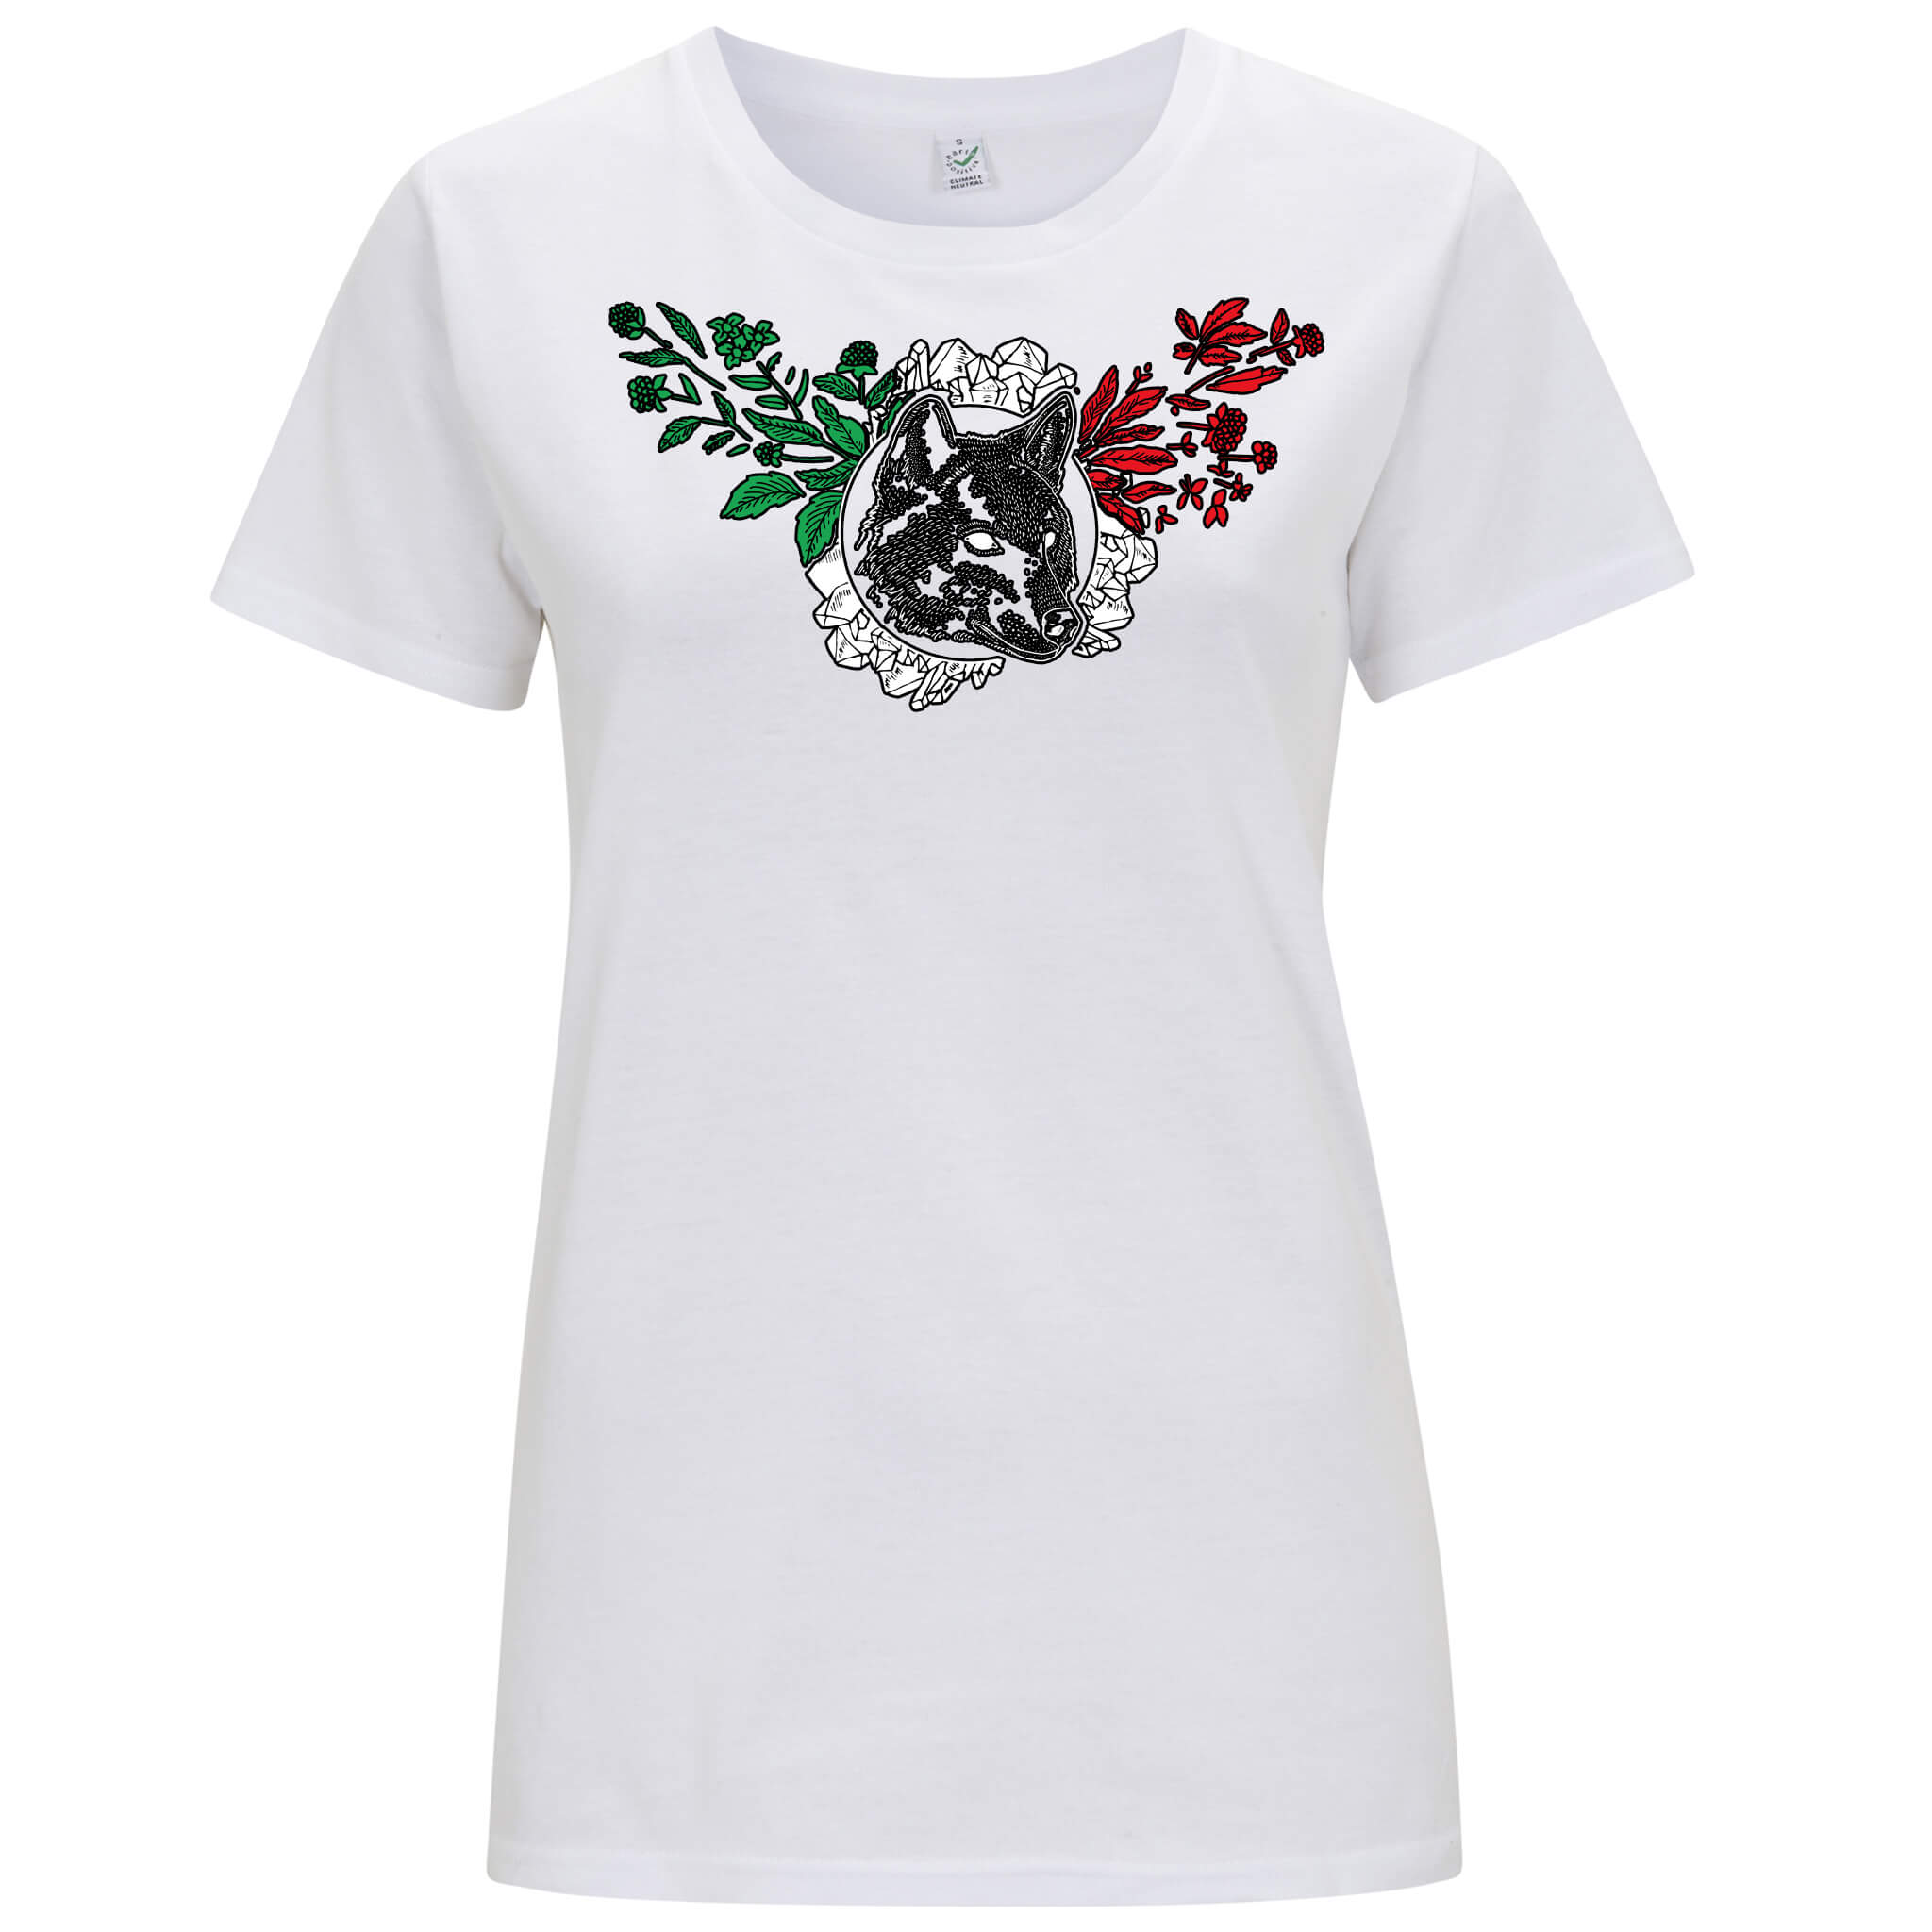 Internazionale Italia - T-shirt Donna - T-Shirt by Fol The Brand